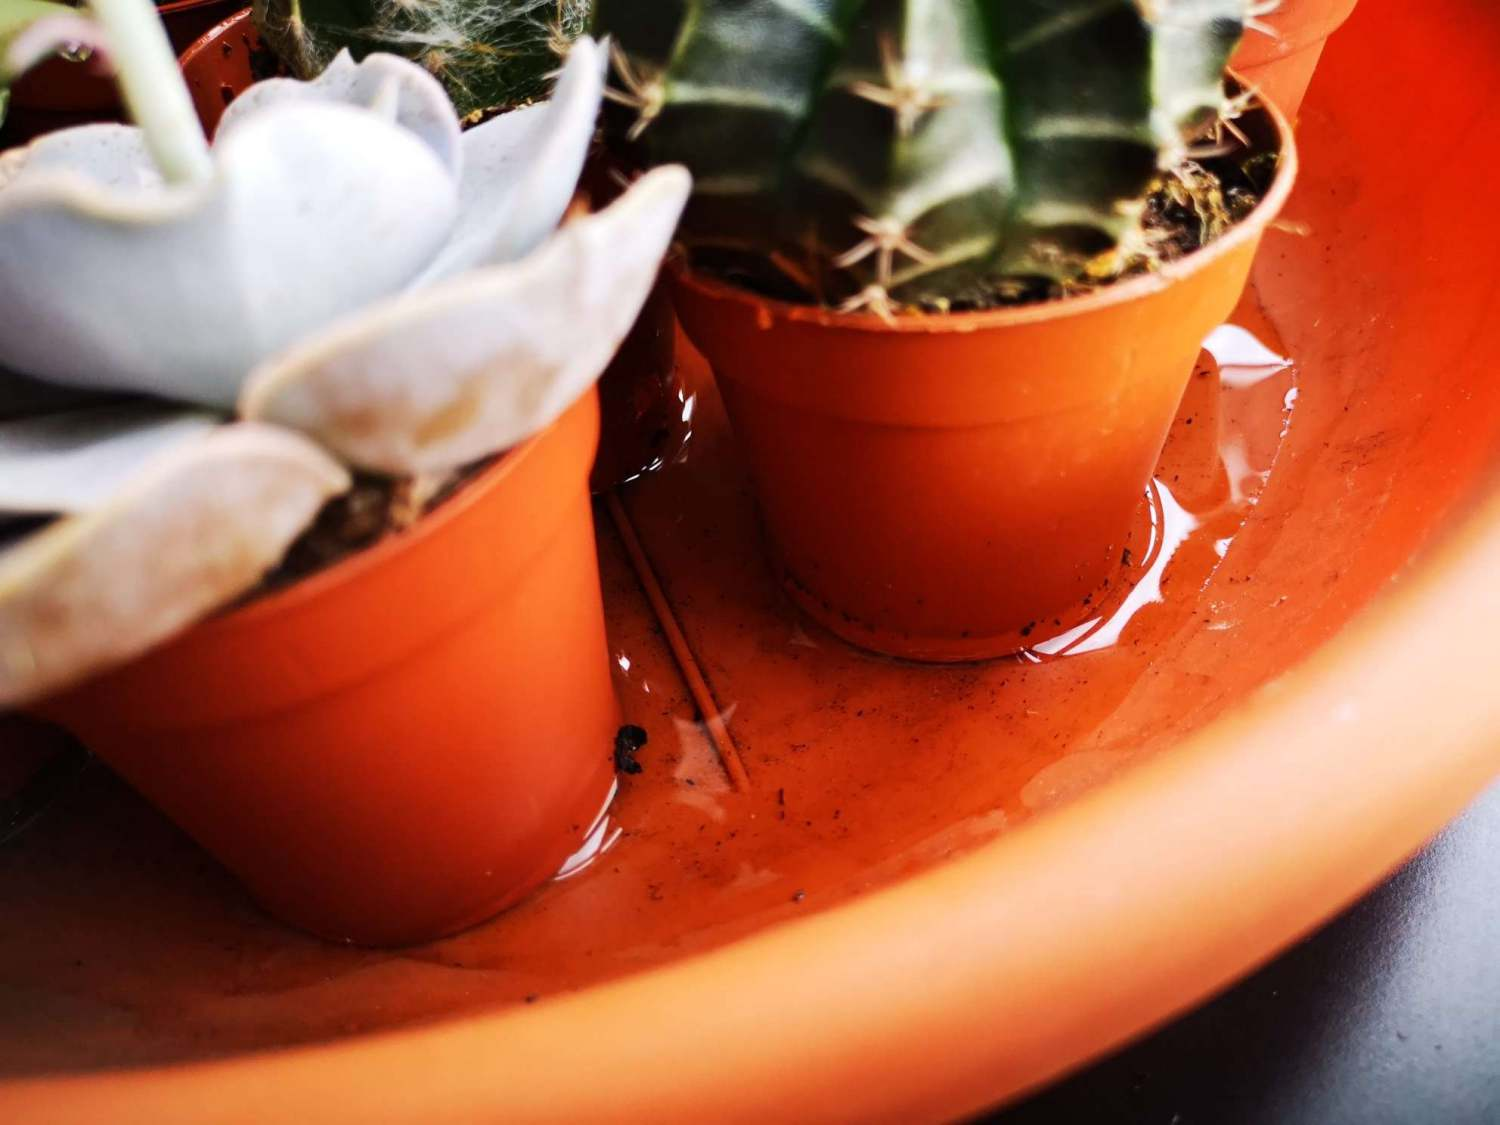 succulent care guide - water in the pot